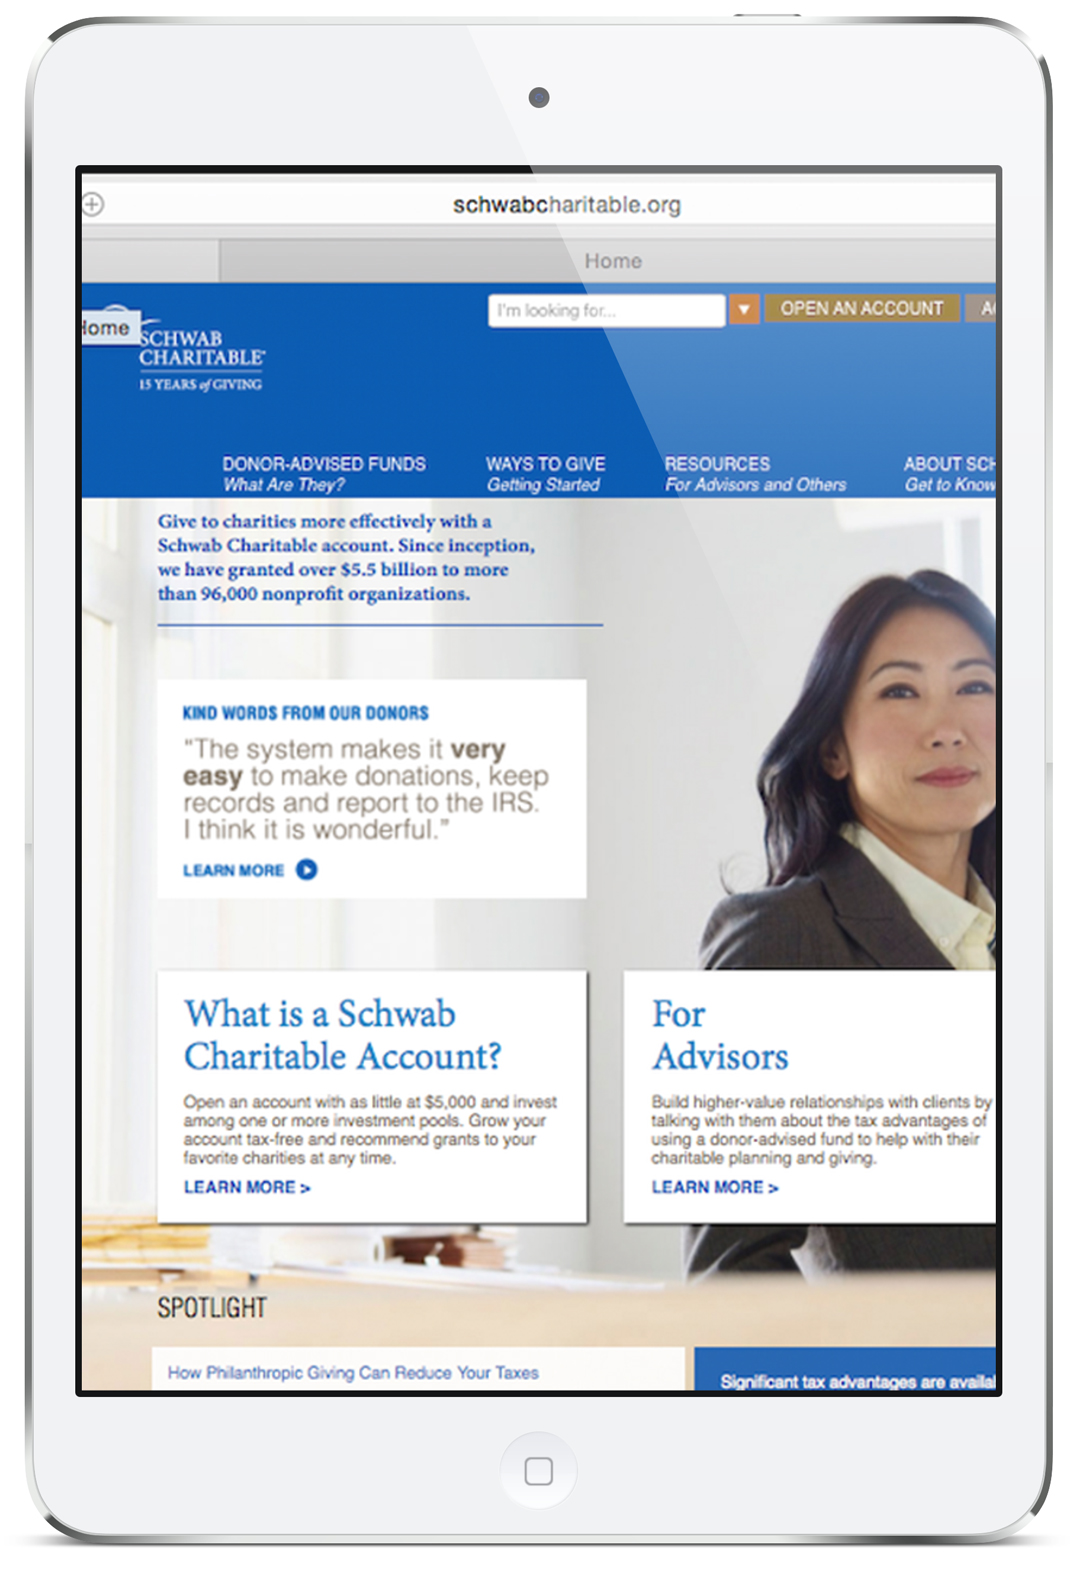 Custom JavaScript Slider for Schwab Charitable by Secret Agency